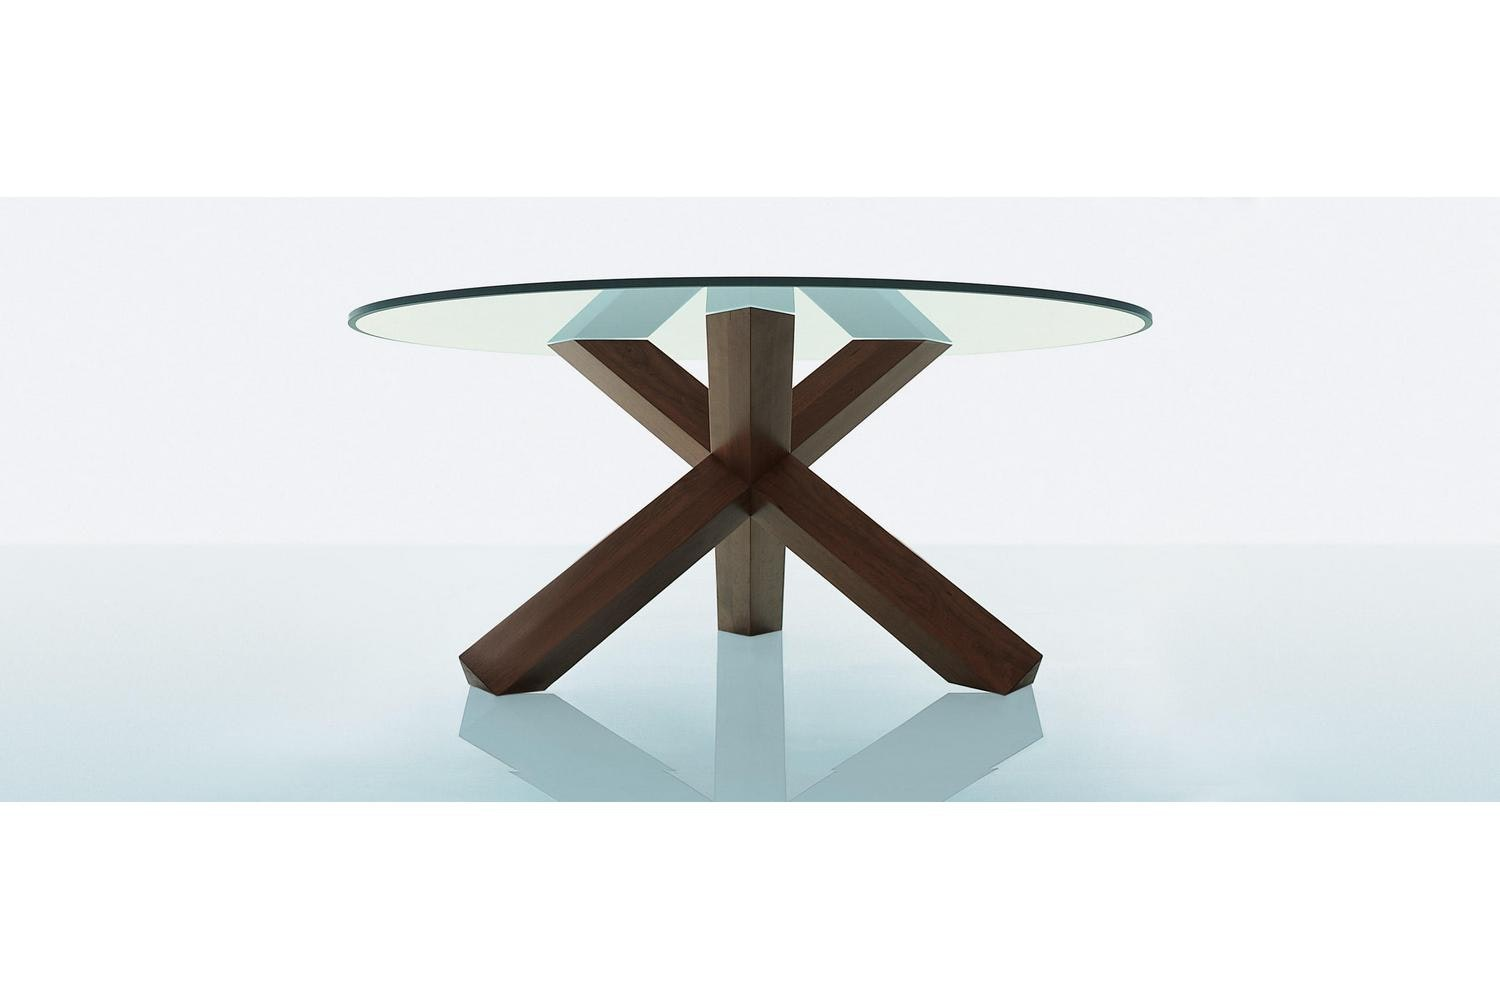 452 La Rotonda Table by Mario Bellini for Cassina